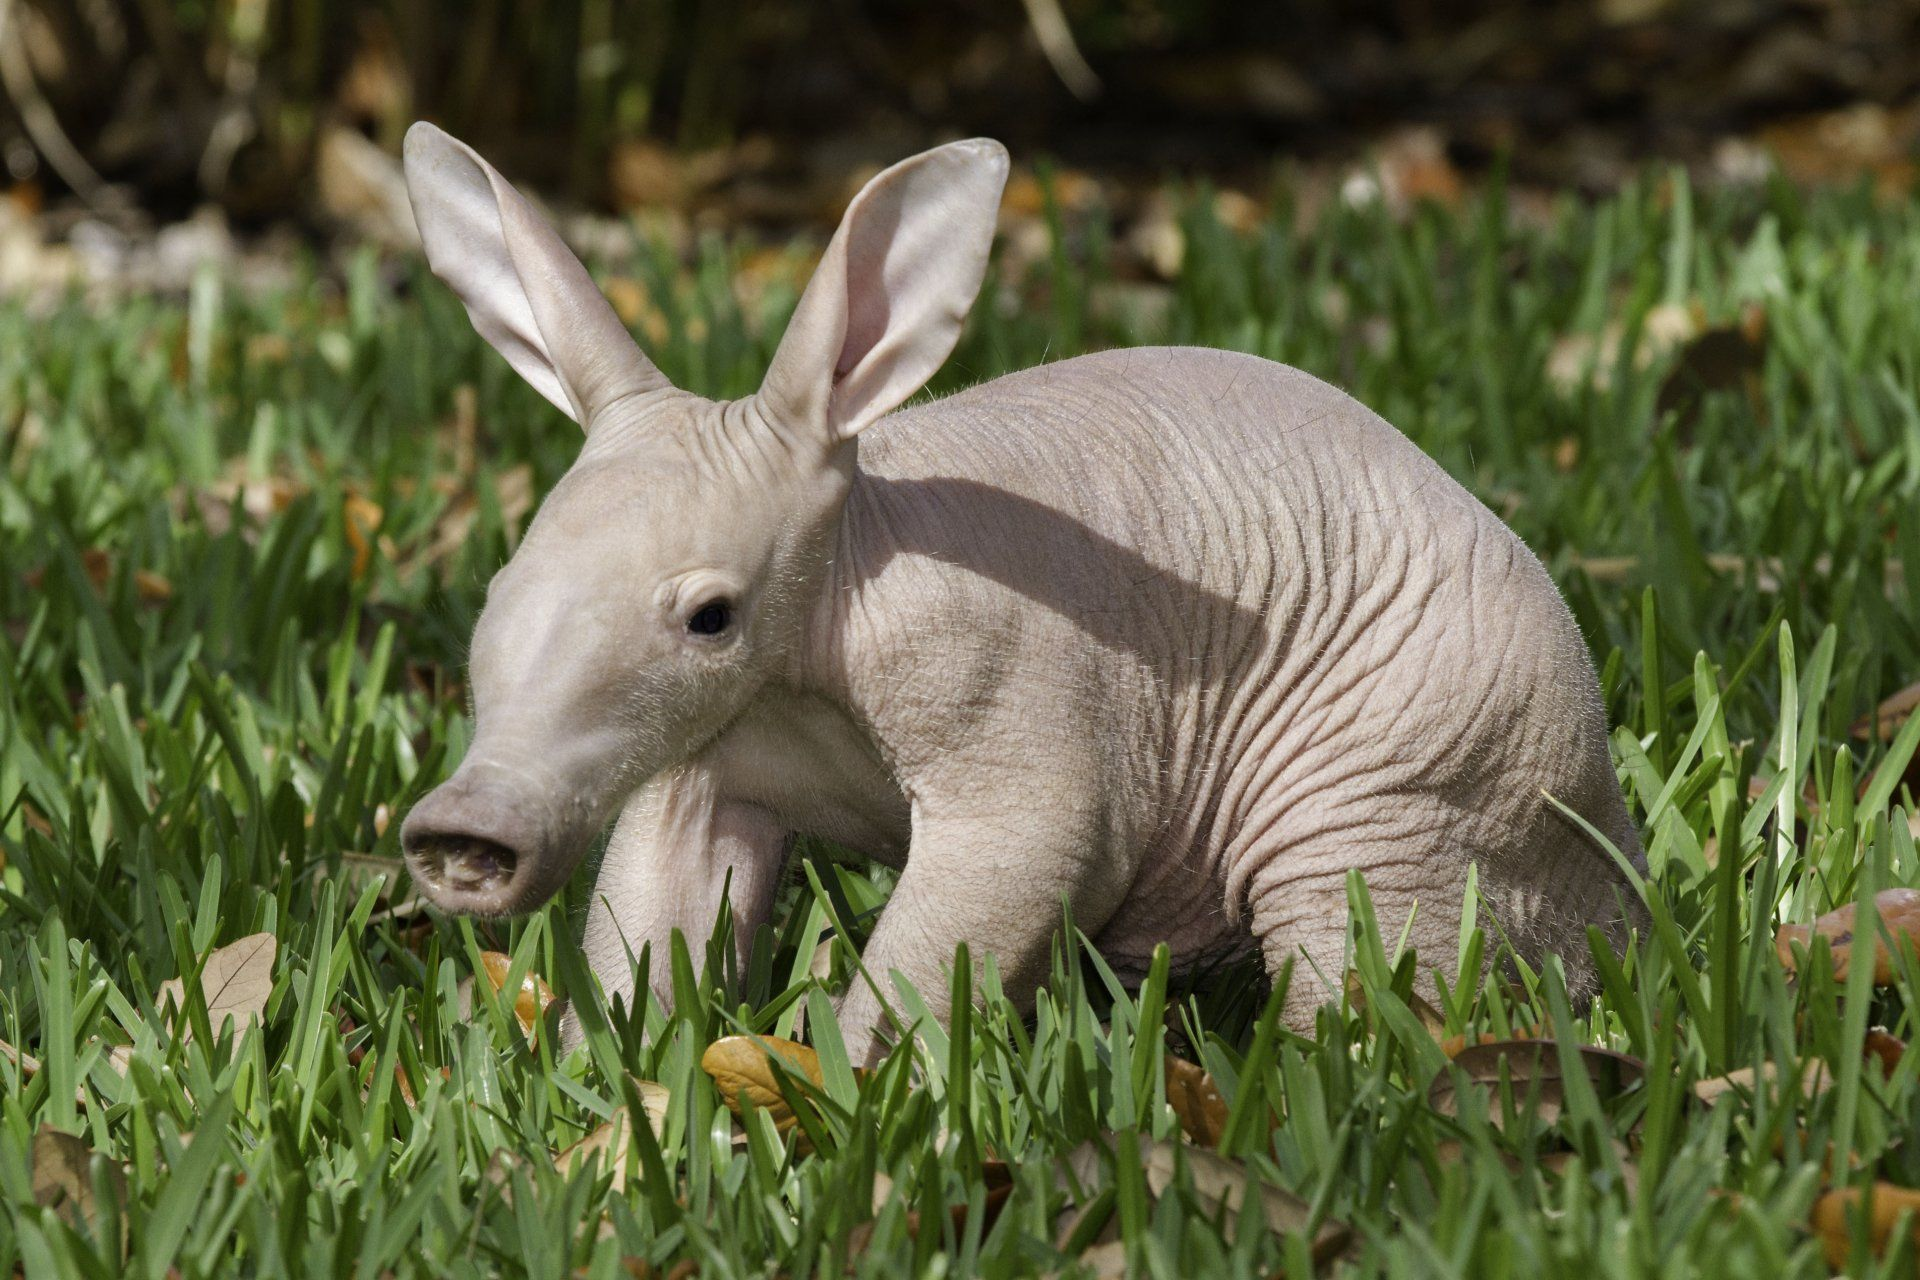 Aardvark 4k Ultra HD Wallpapers and Backgrounds Image